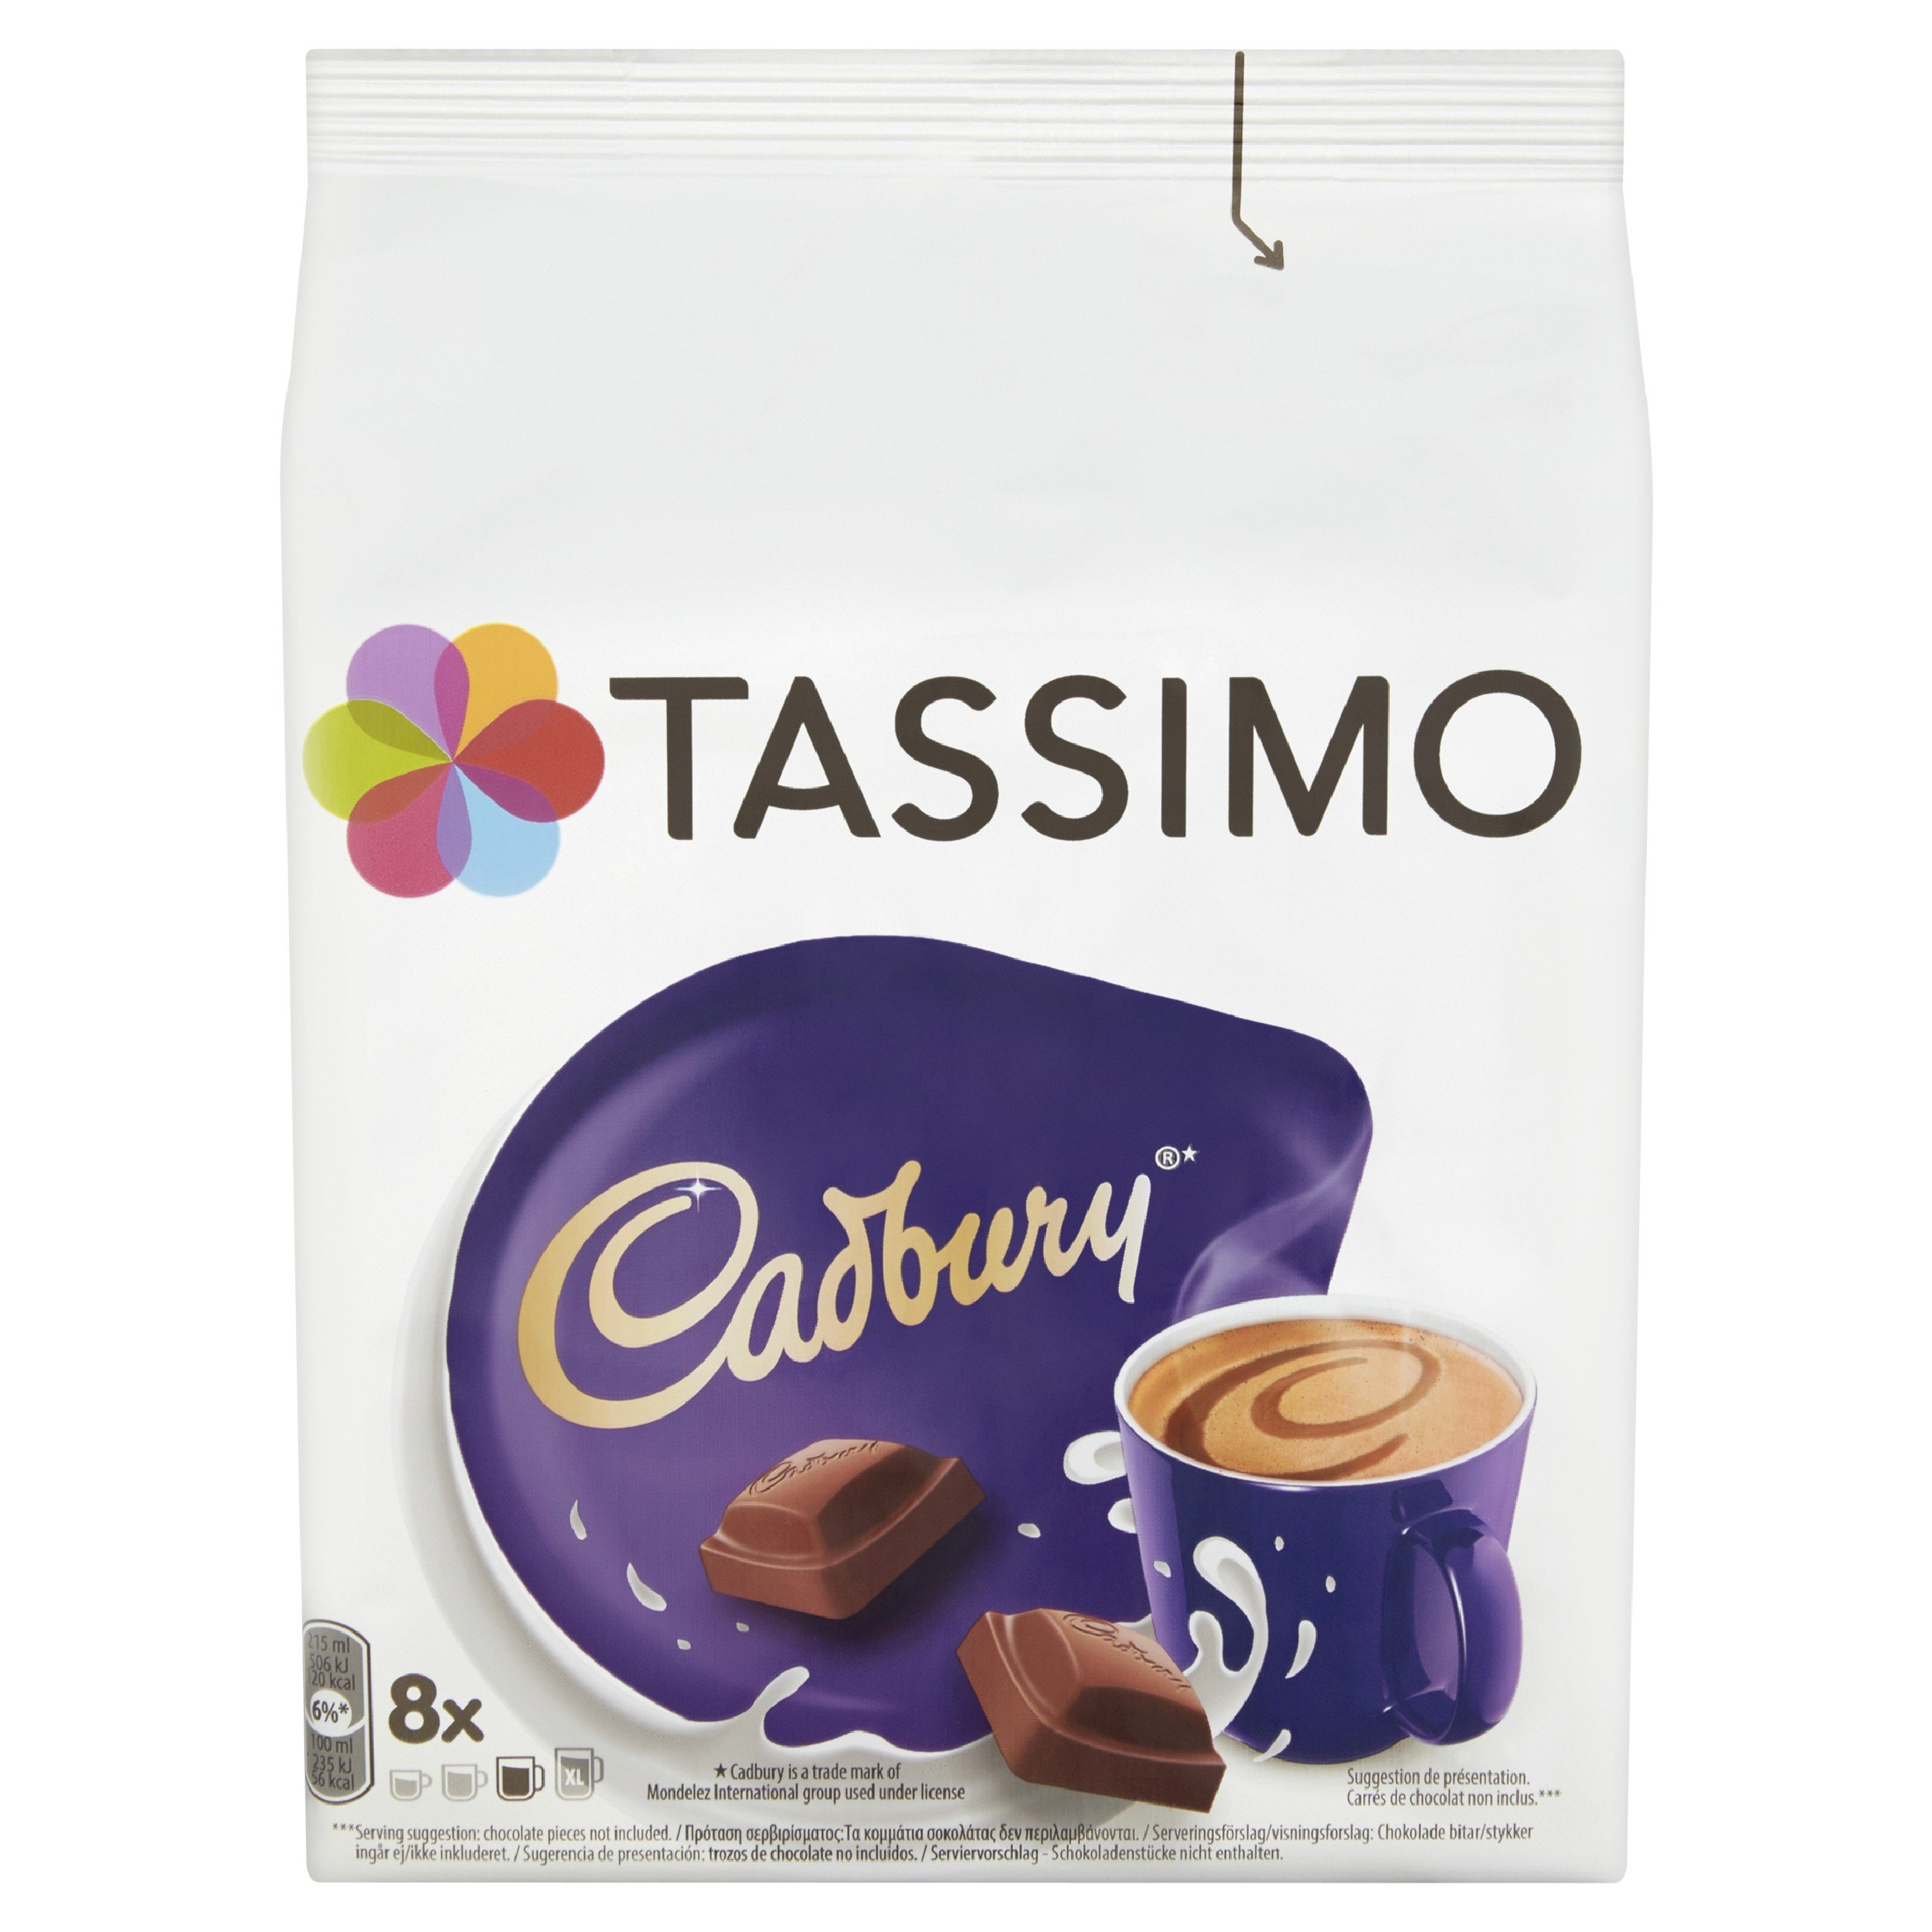 Tassimo T-Disc coffee pods and capsules (a chocolate notes coffee with aromas of dried fruit and chocolate)